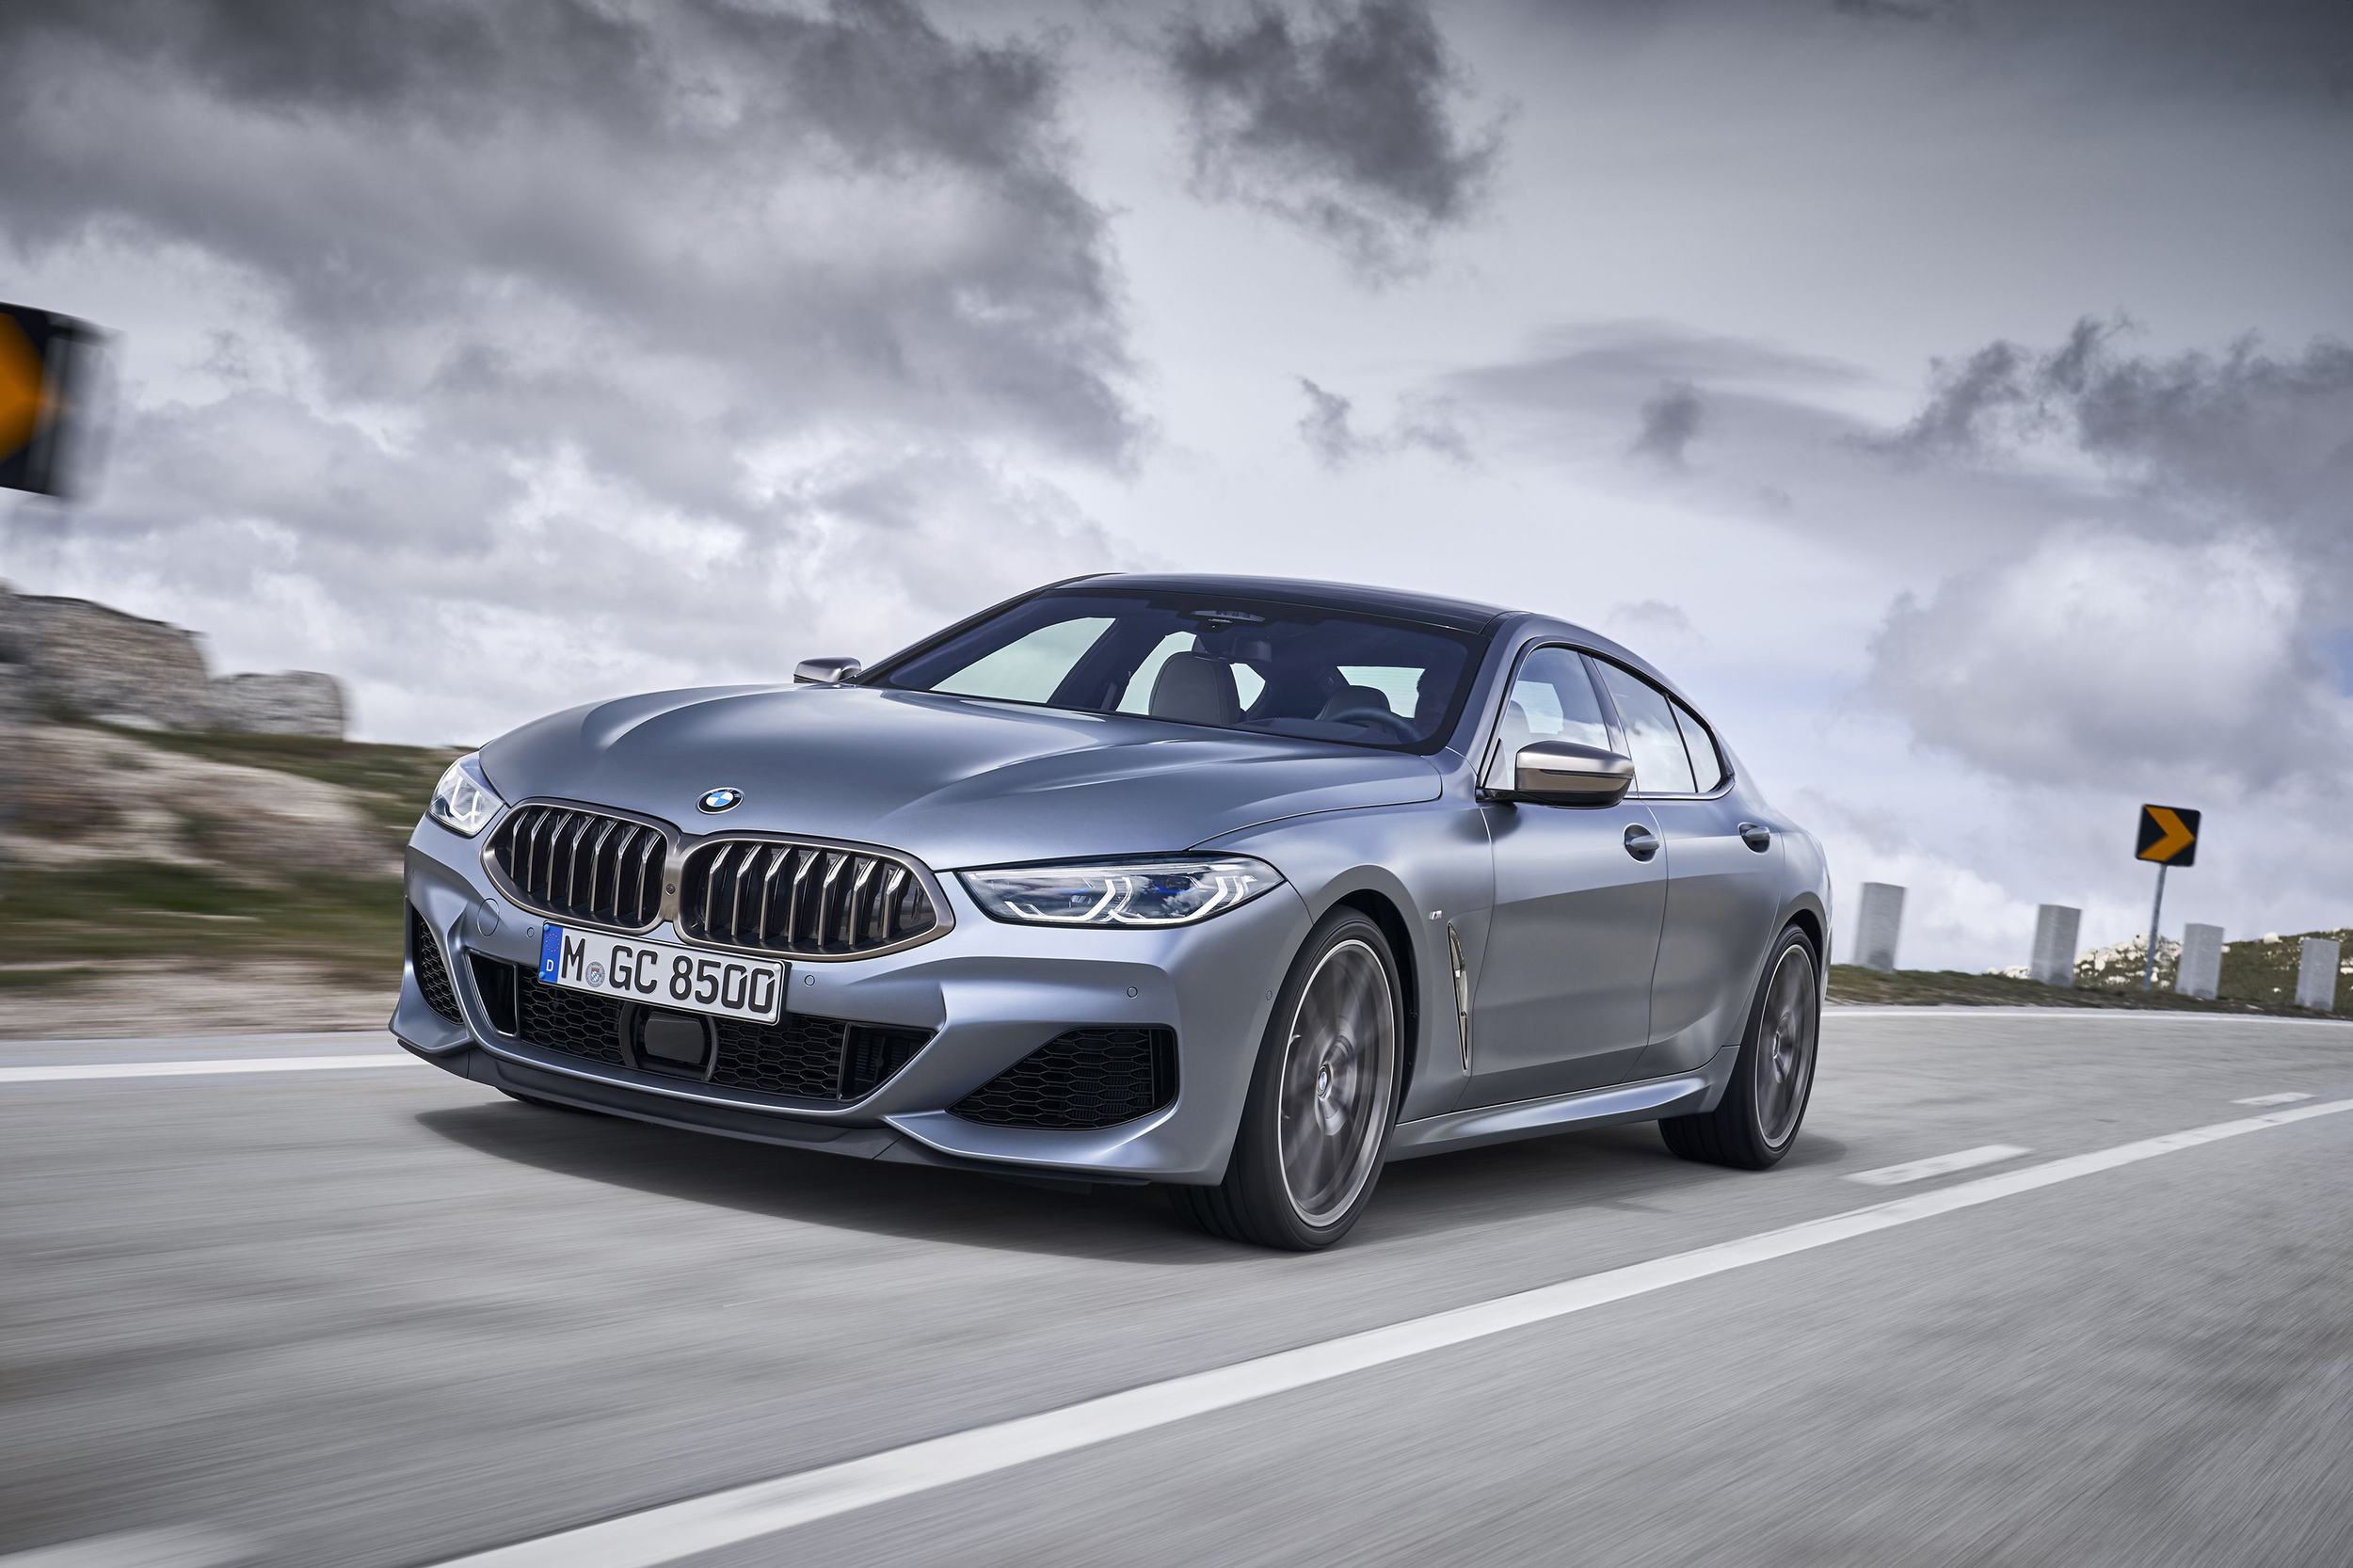 2020 BMW 8 Series Gran Coupe Revealed With 523 HP